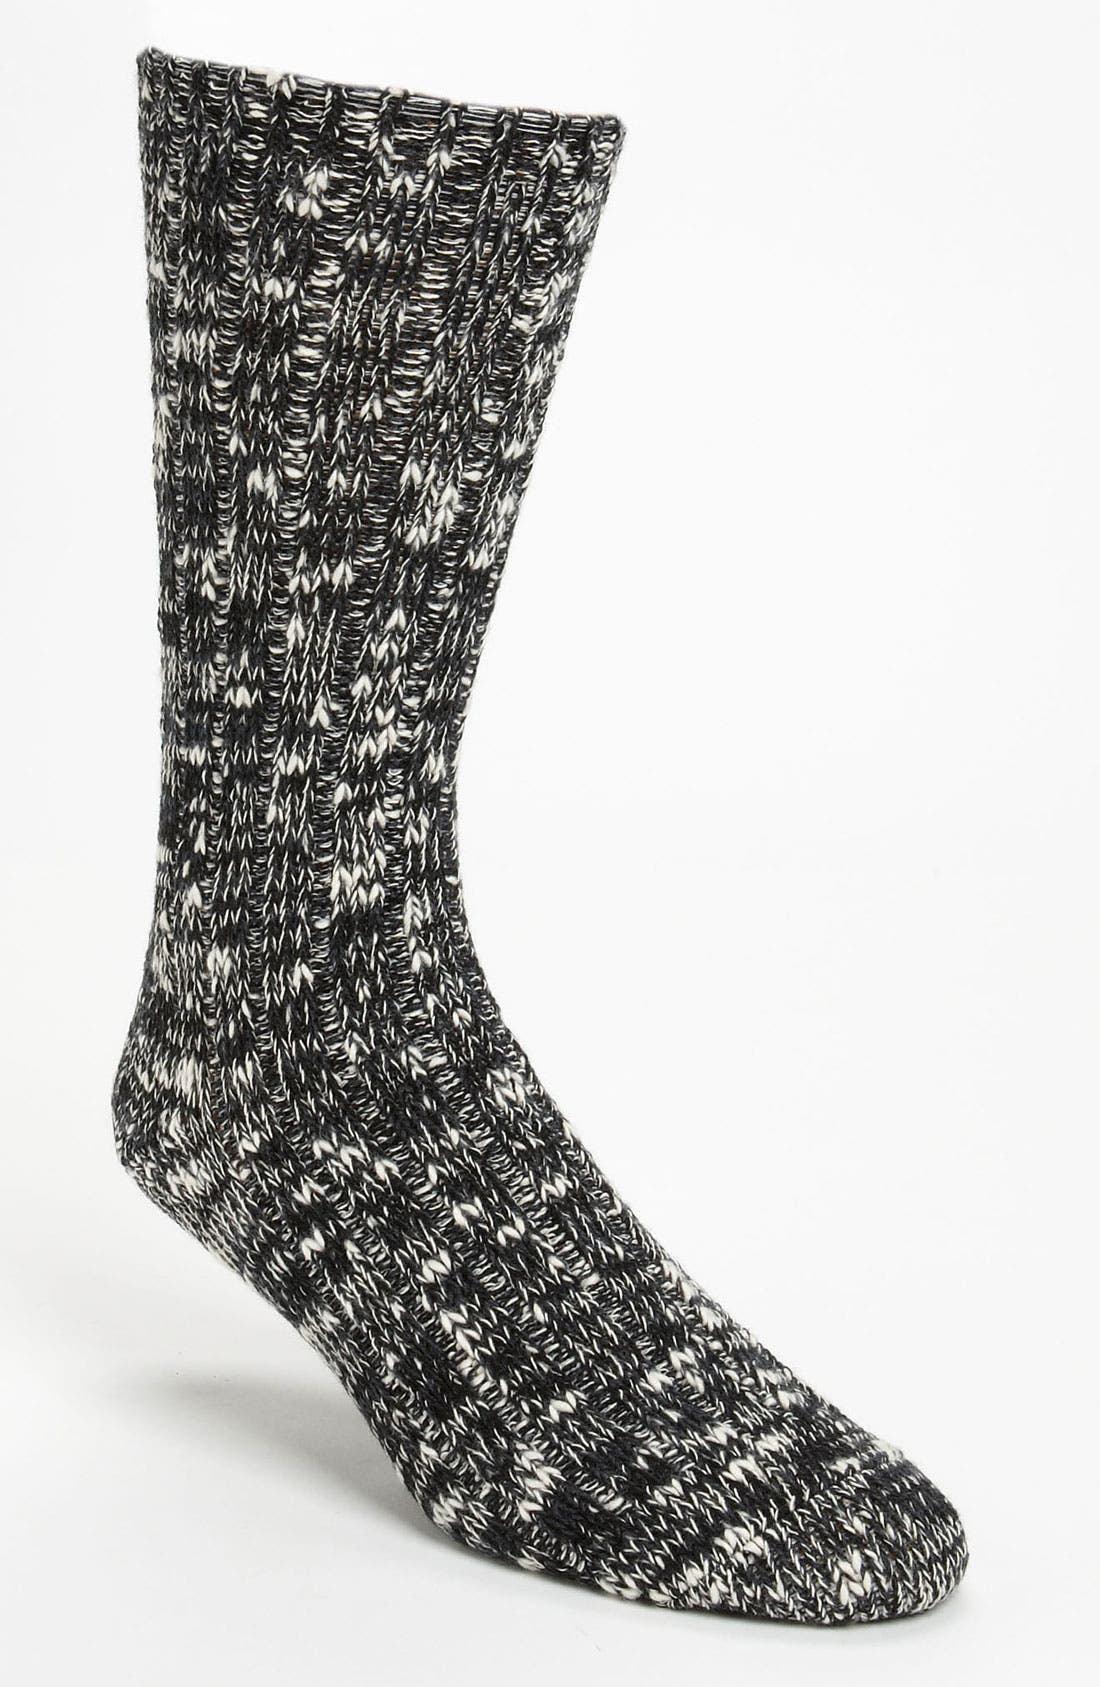 Ragg Knit Socks,                             Main thumbnail 1, color,                             001